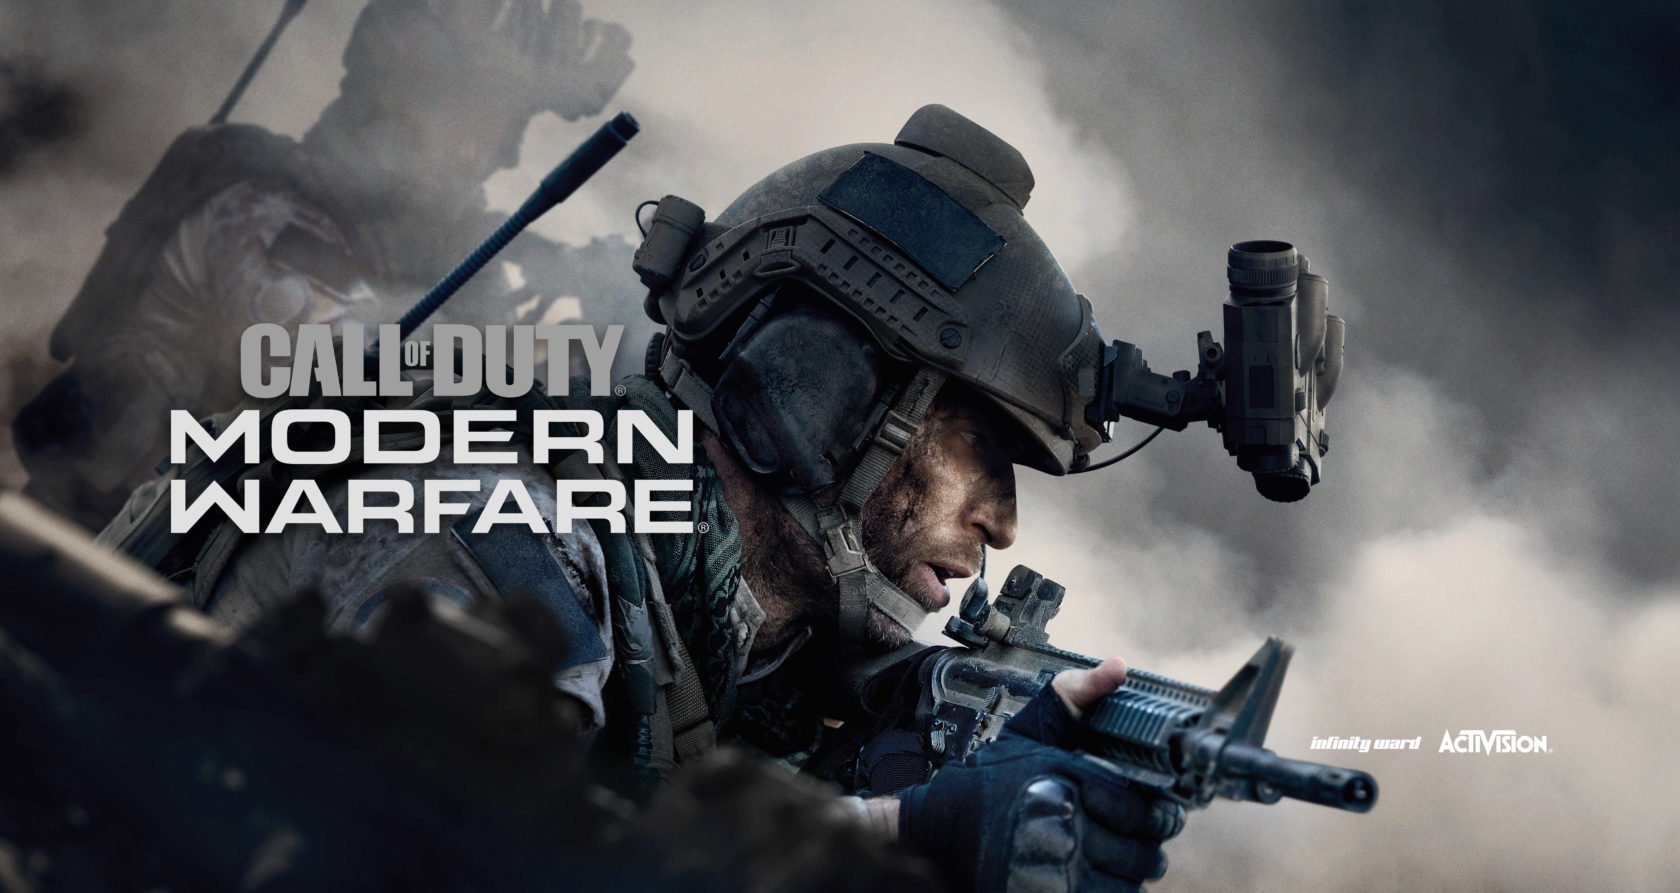 Call of Duty Modern Warfare SECONDARY 01 low min - اشتراک آنلاین  Call of Duty: Modern Warfare